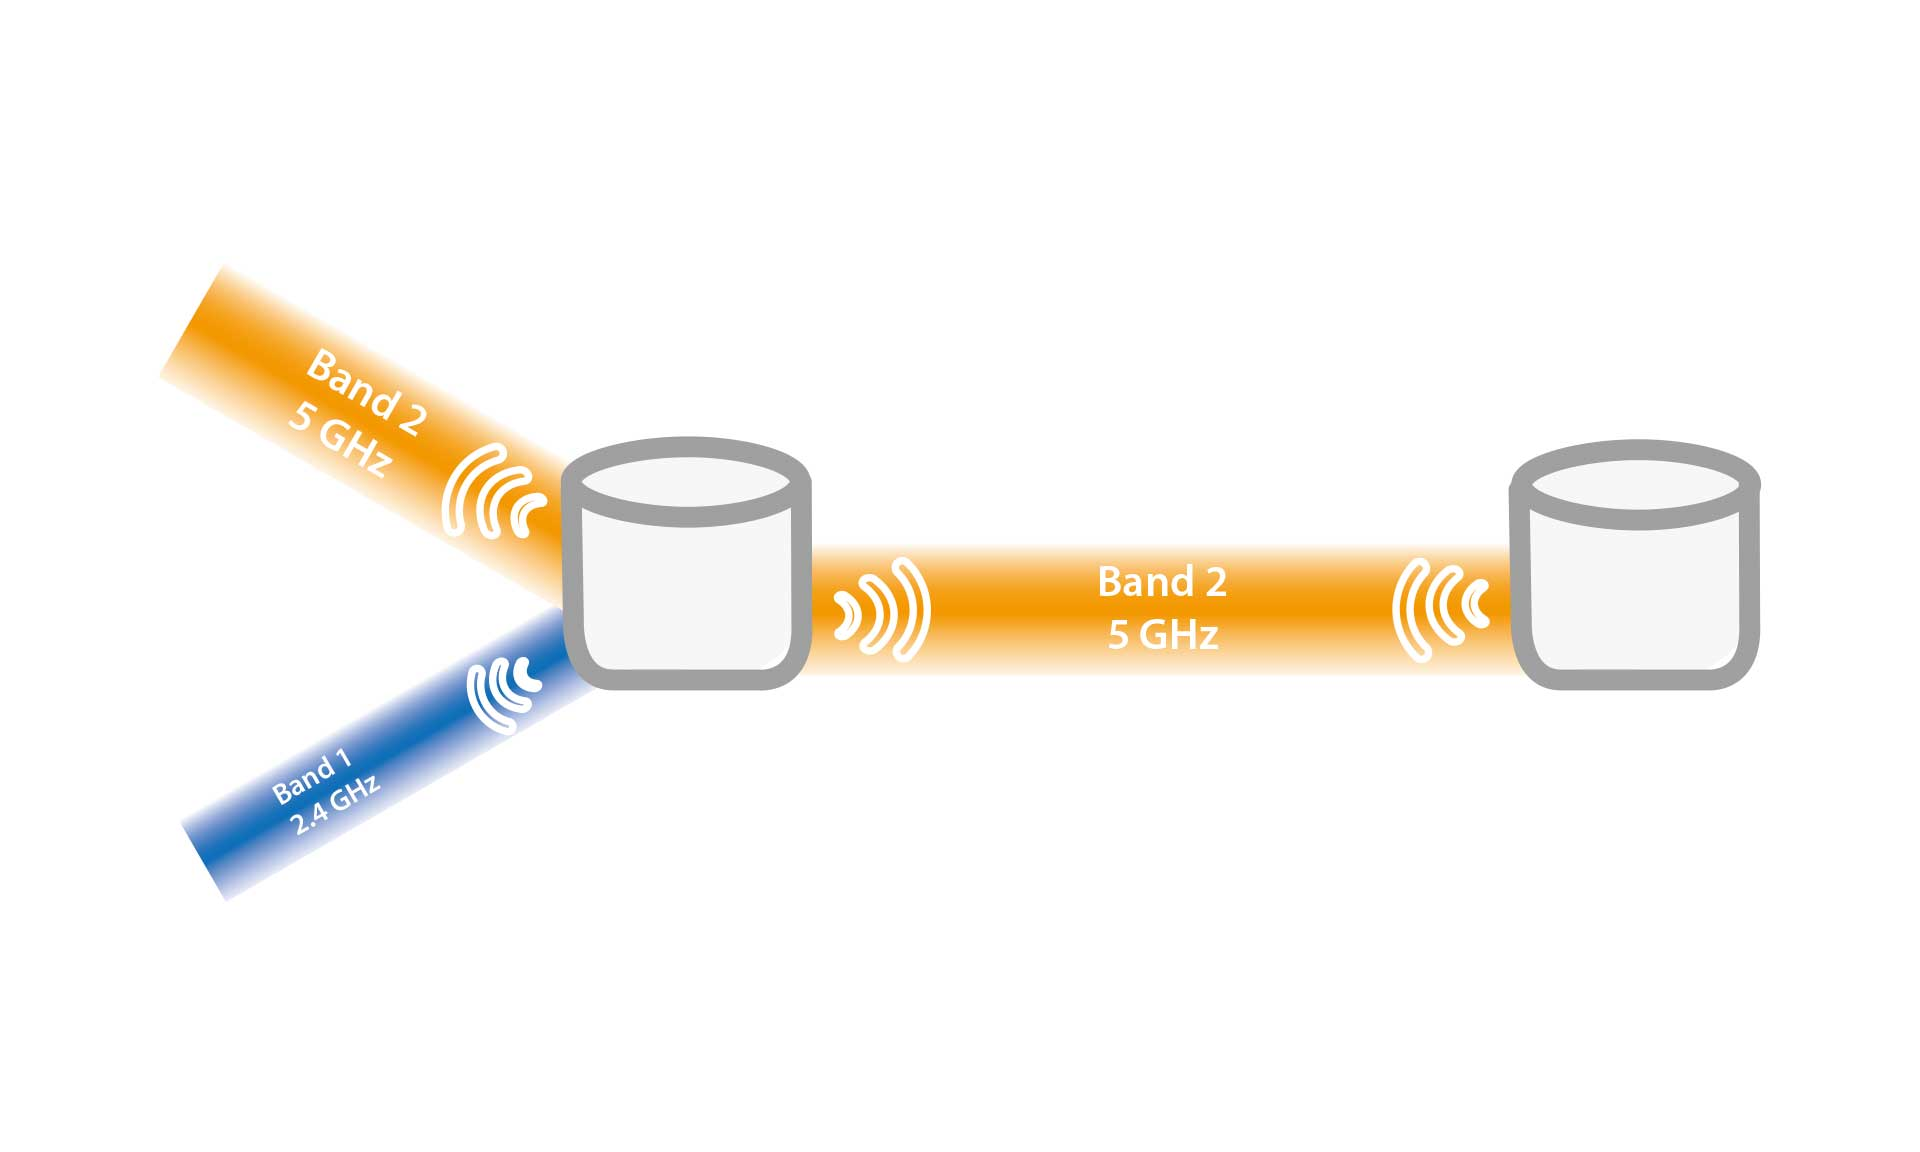 Other tri-band systems use the same single 5GHz band for communication with both your devices and for backhaul, meaning network speeds can be throttled by up to 50%.